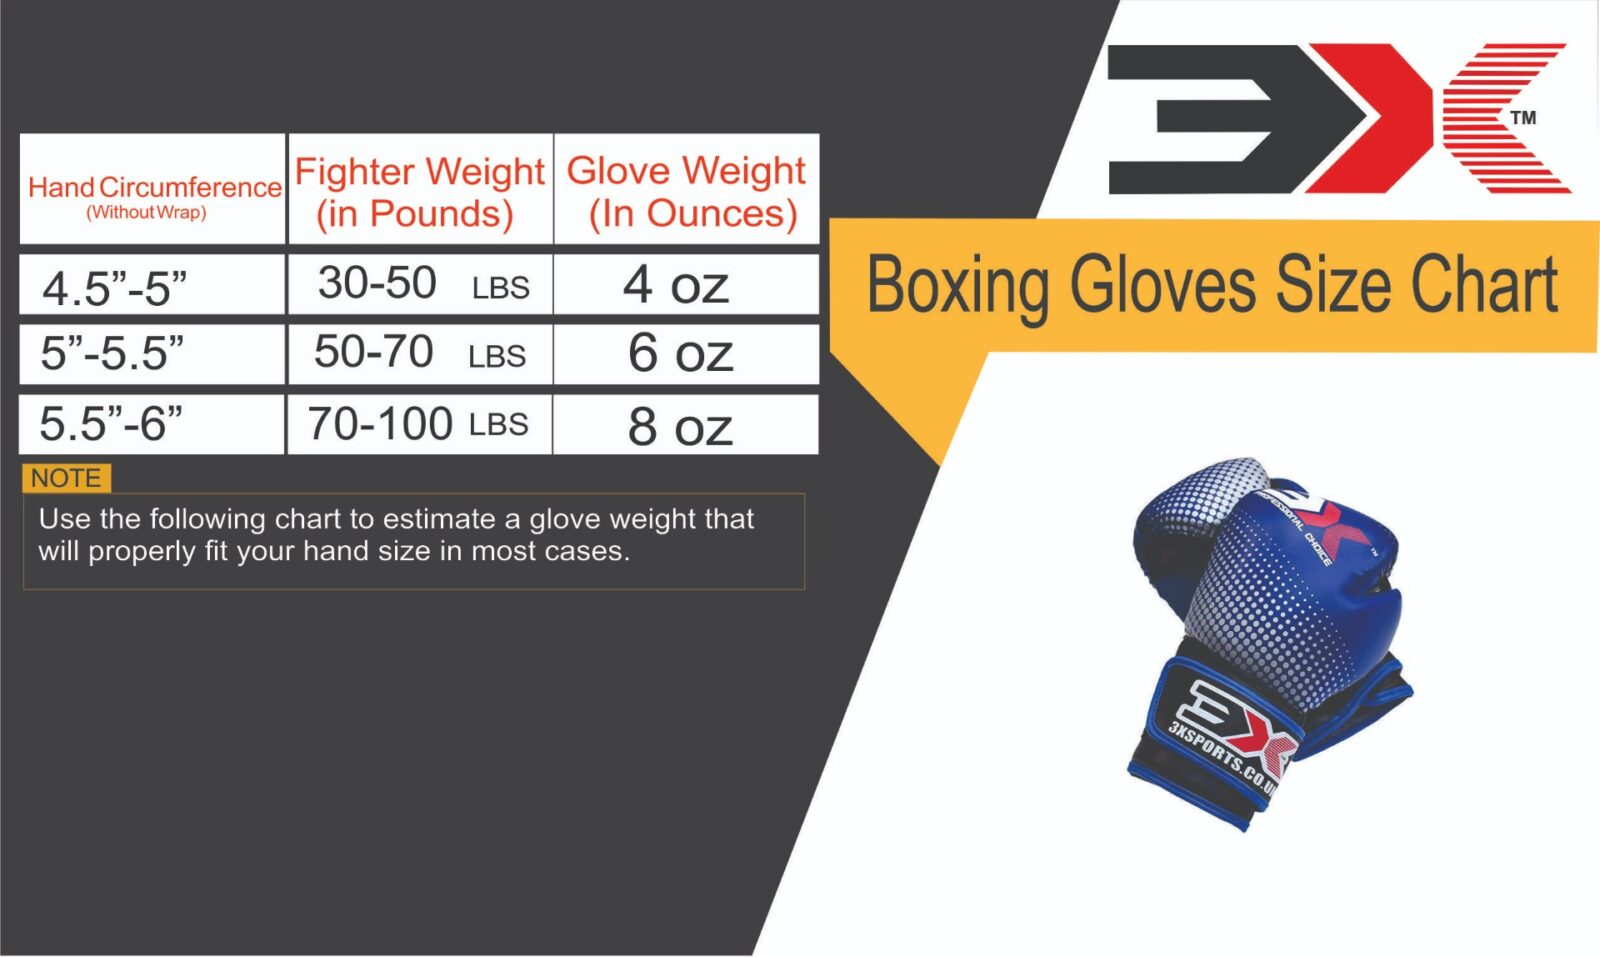 3x Sports Professional Choice KIDS X-1-06 Kids Boxing Gloves(BLUE,6oz)-1218